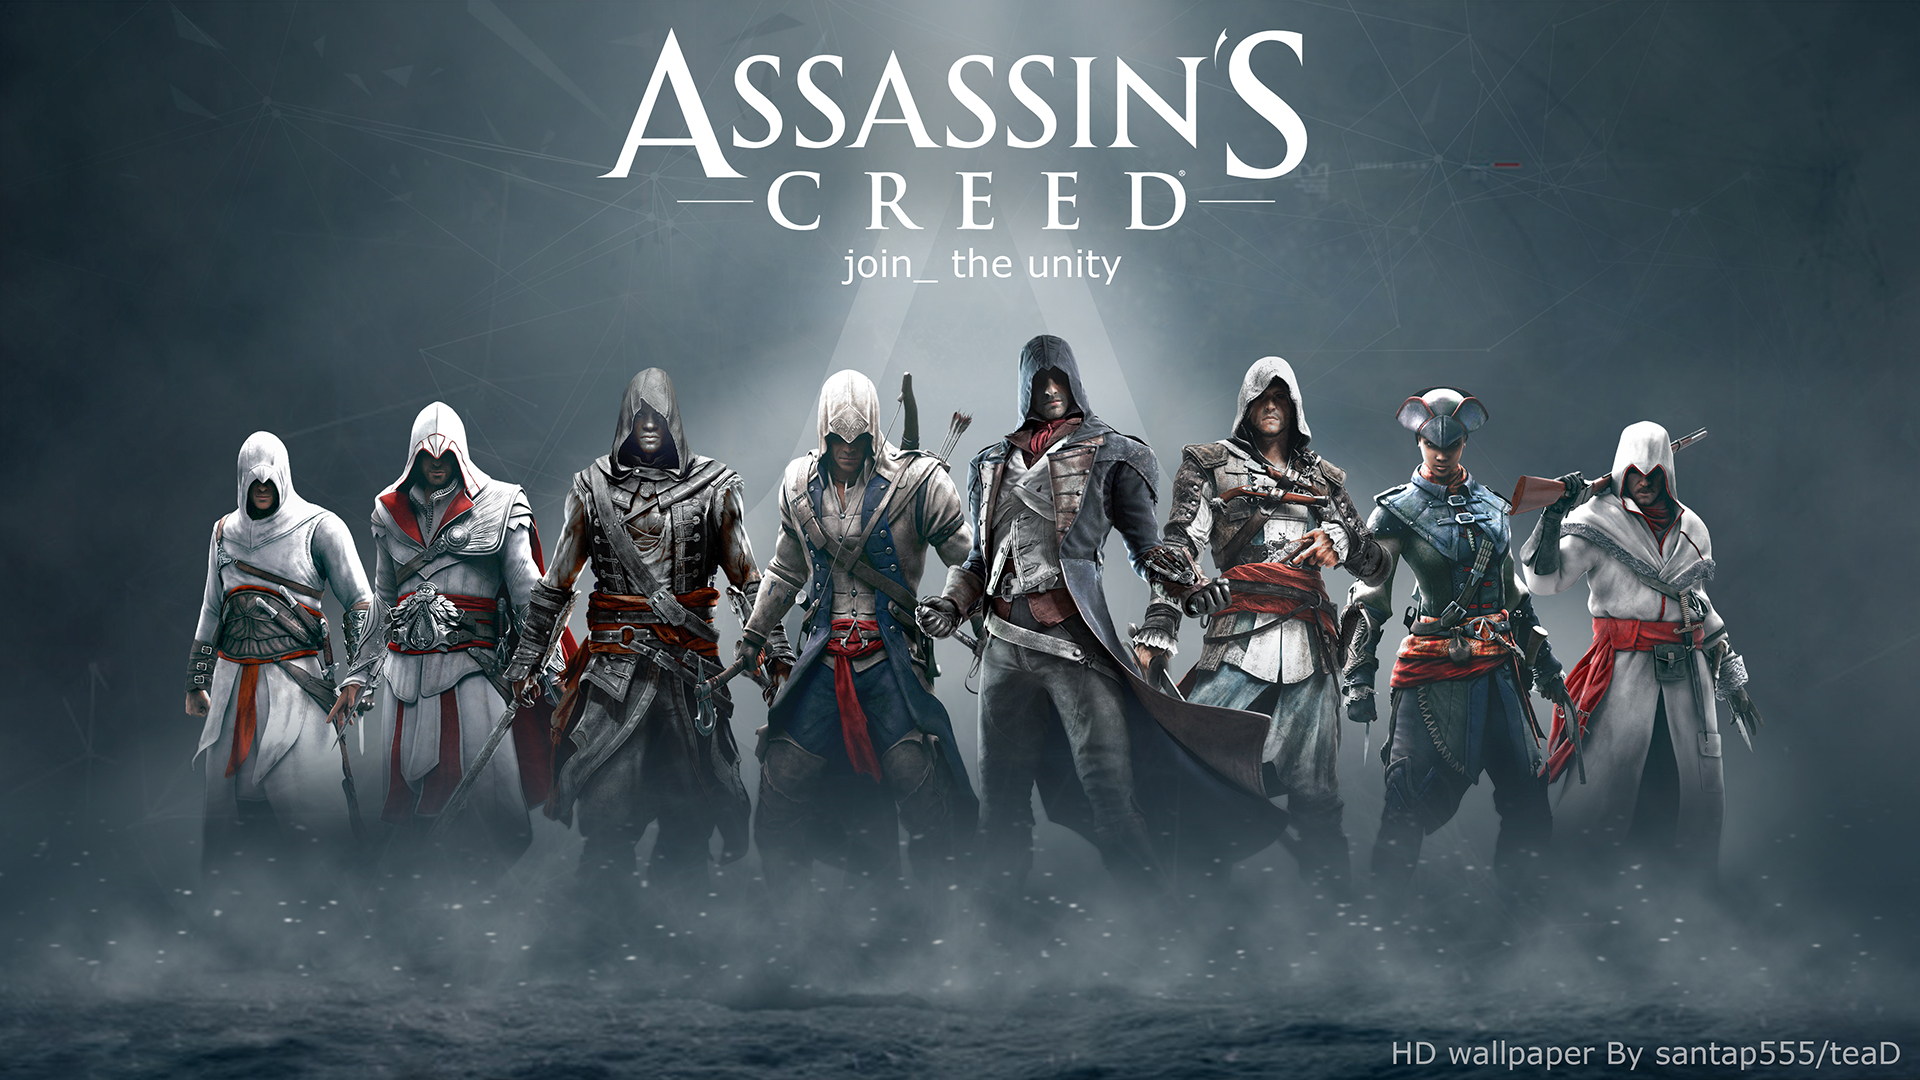 Wallpaper Assassins Creed Posted By Samantha Tremblay